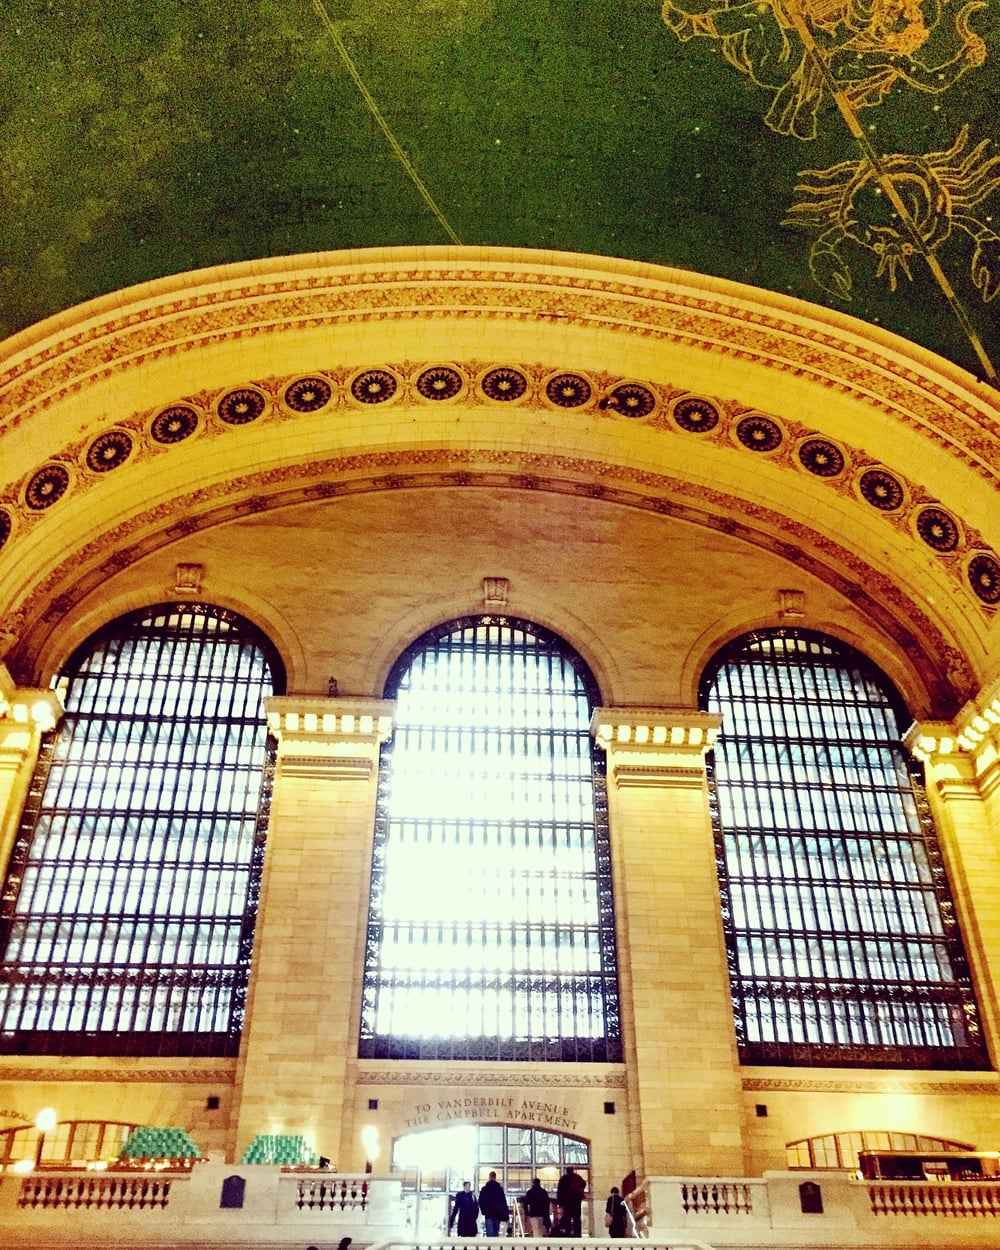 I spent the day in NYC with my hubby. Grand Central Terminal always takes my breath away. I never tire of her beauty.